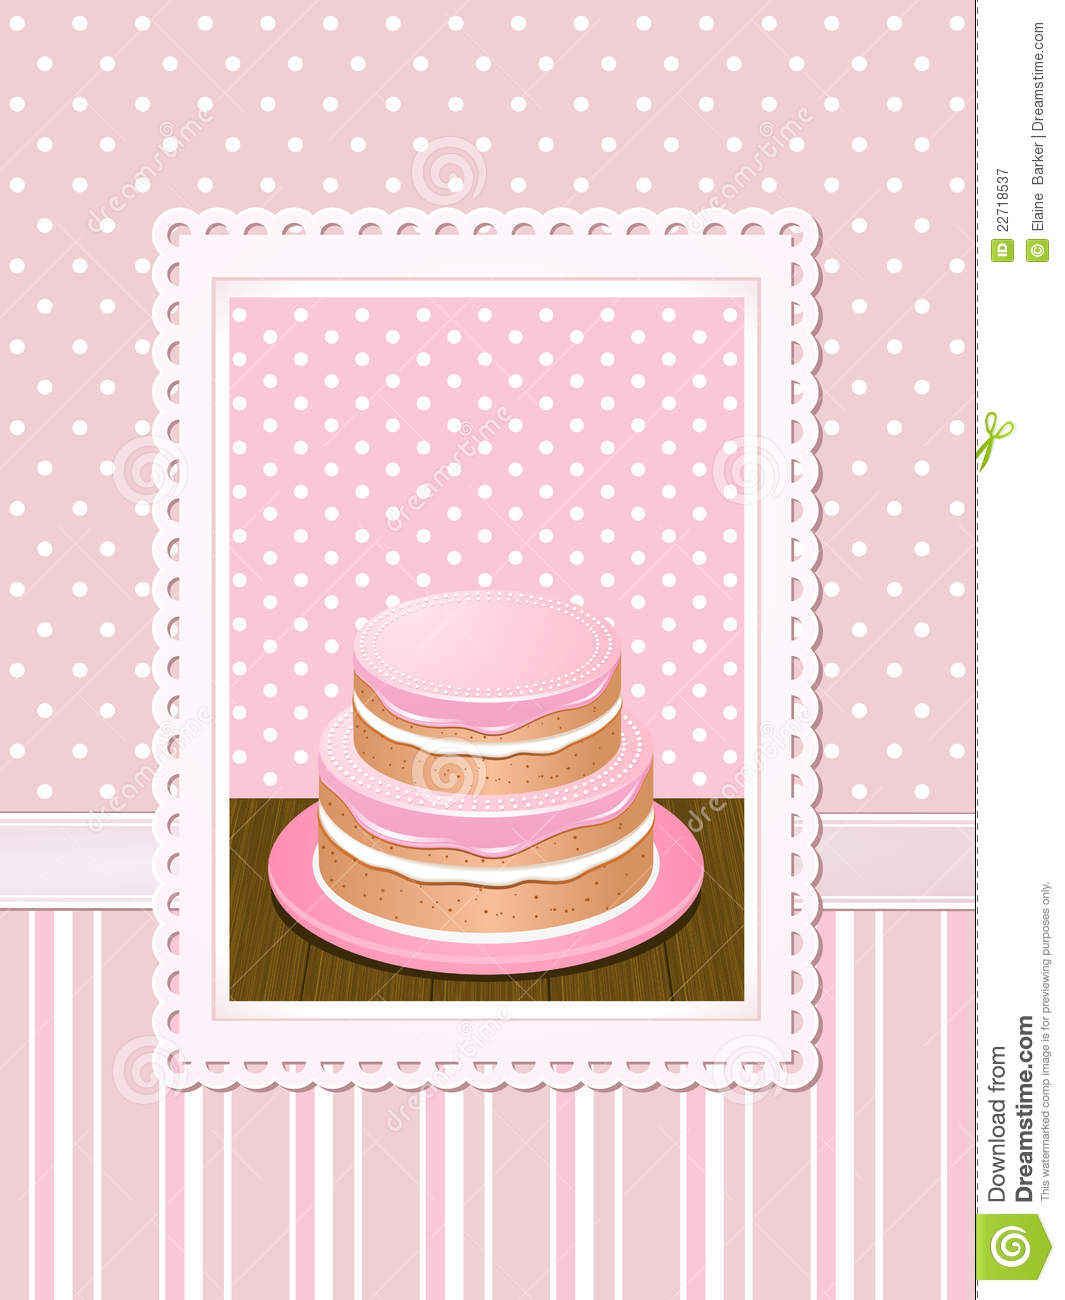 Vintage Cake Background Pink Stock Vector Illustration